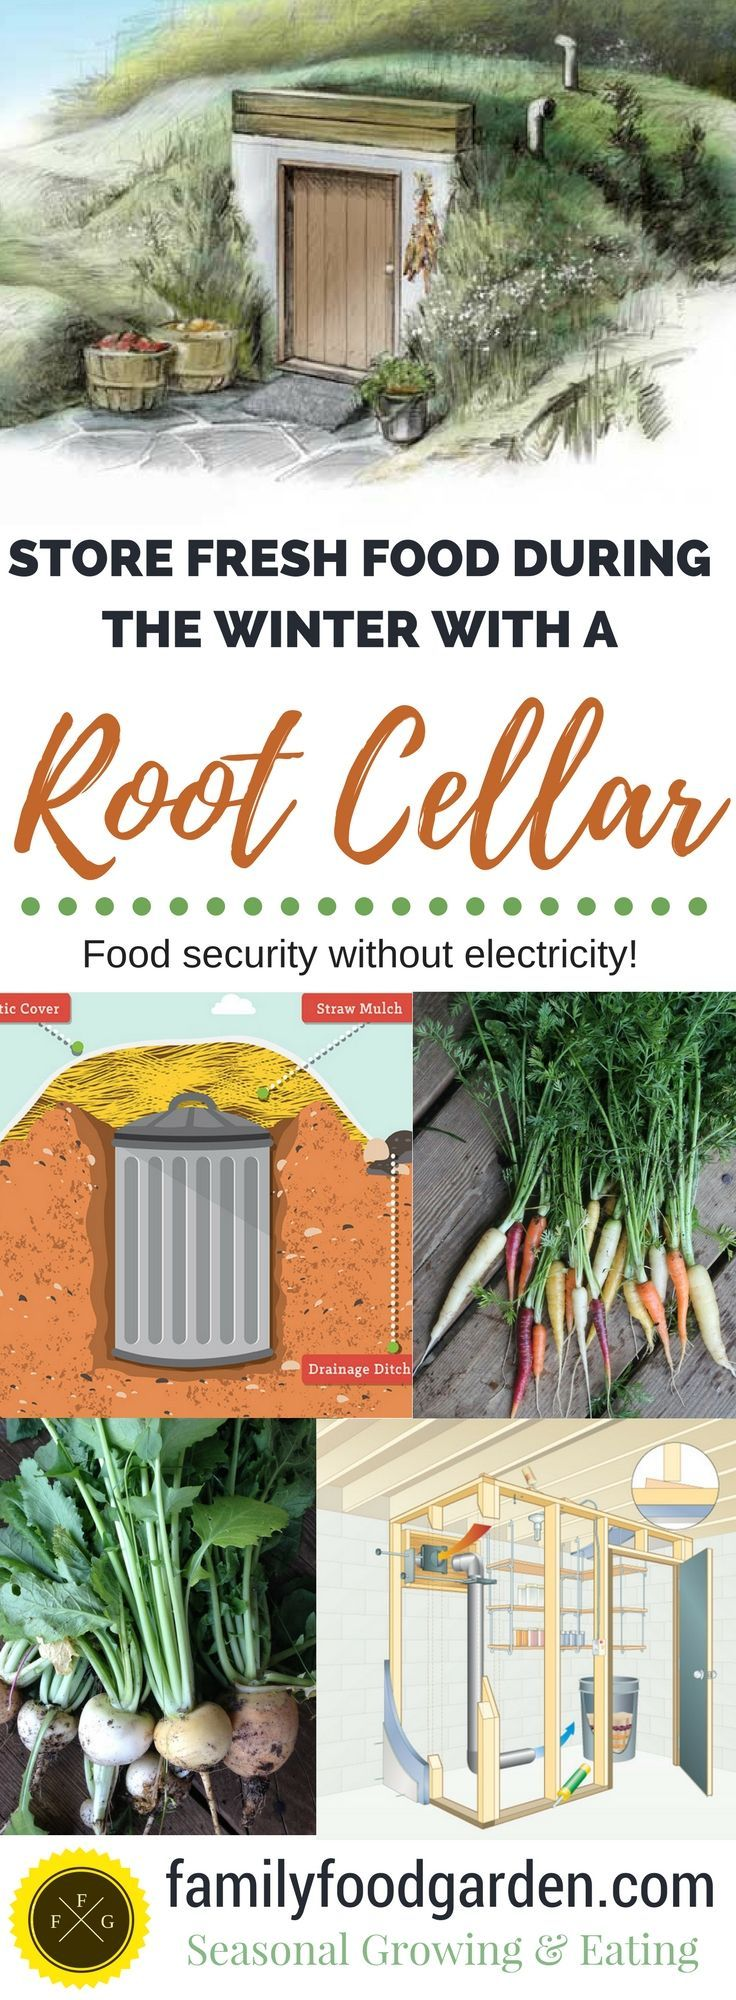 Root Cellars for Winter Food Storage